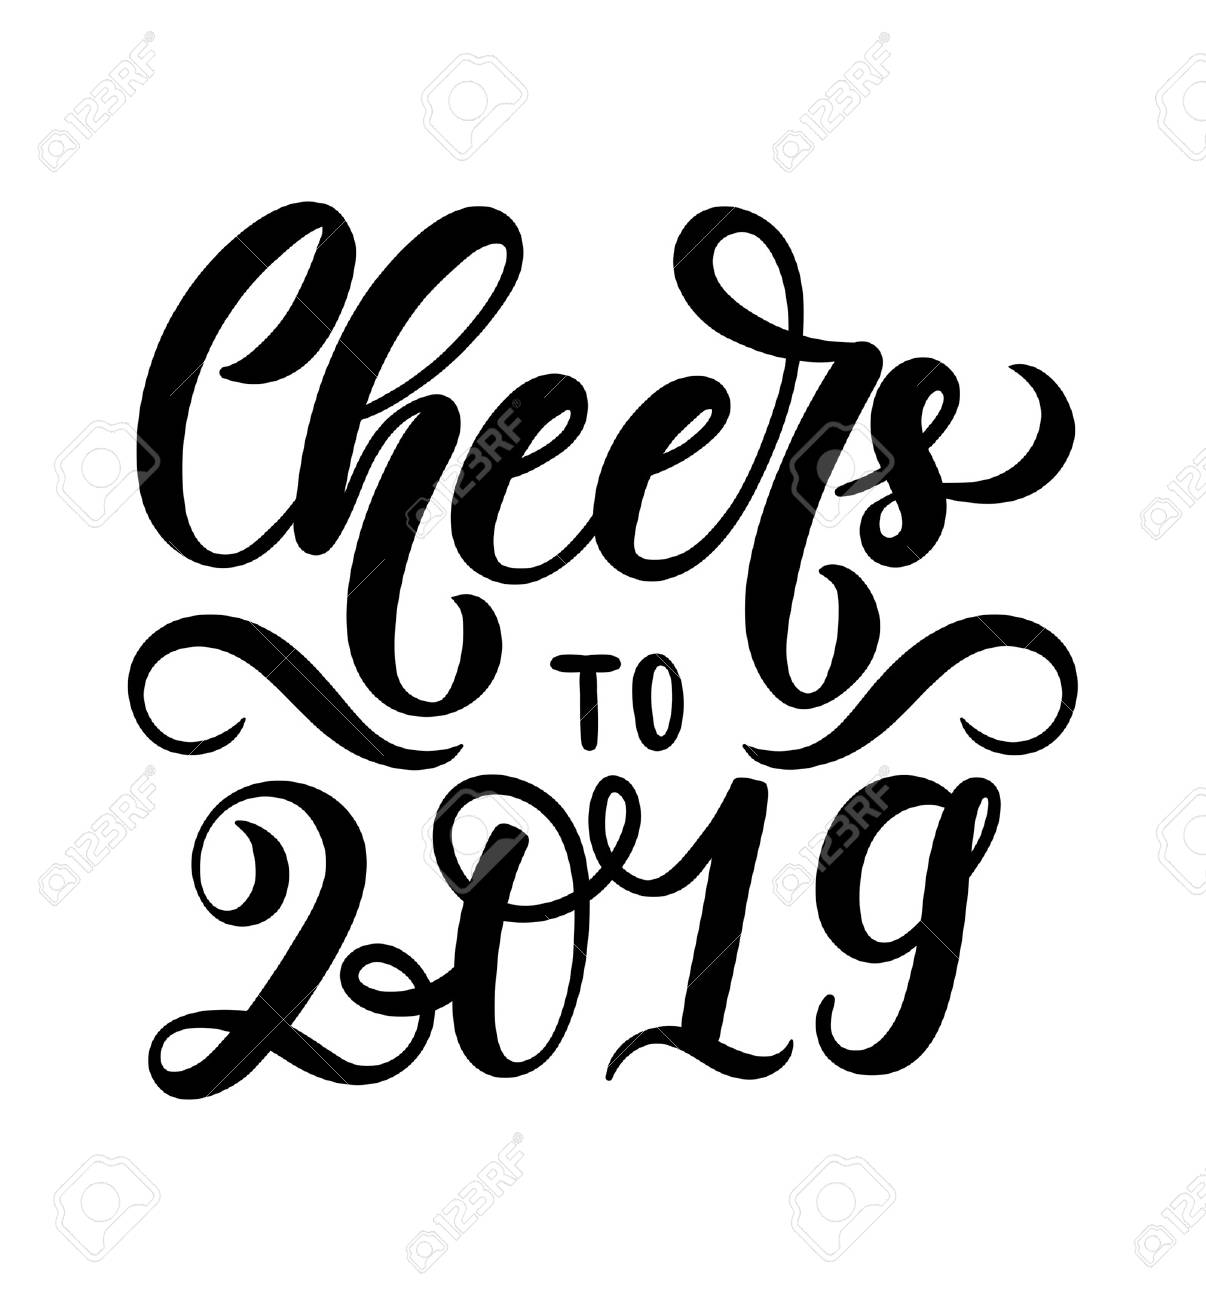 cheers to 2019 lettering inscription hand drawn new year inspirational lettering card christmas print